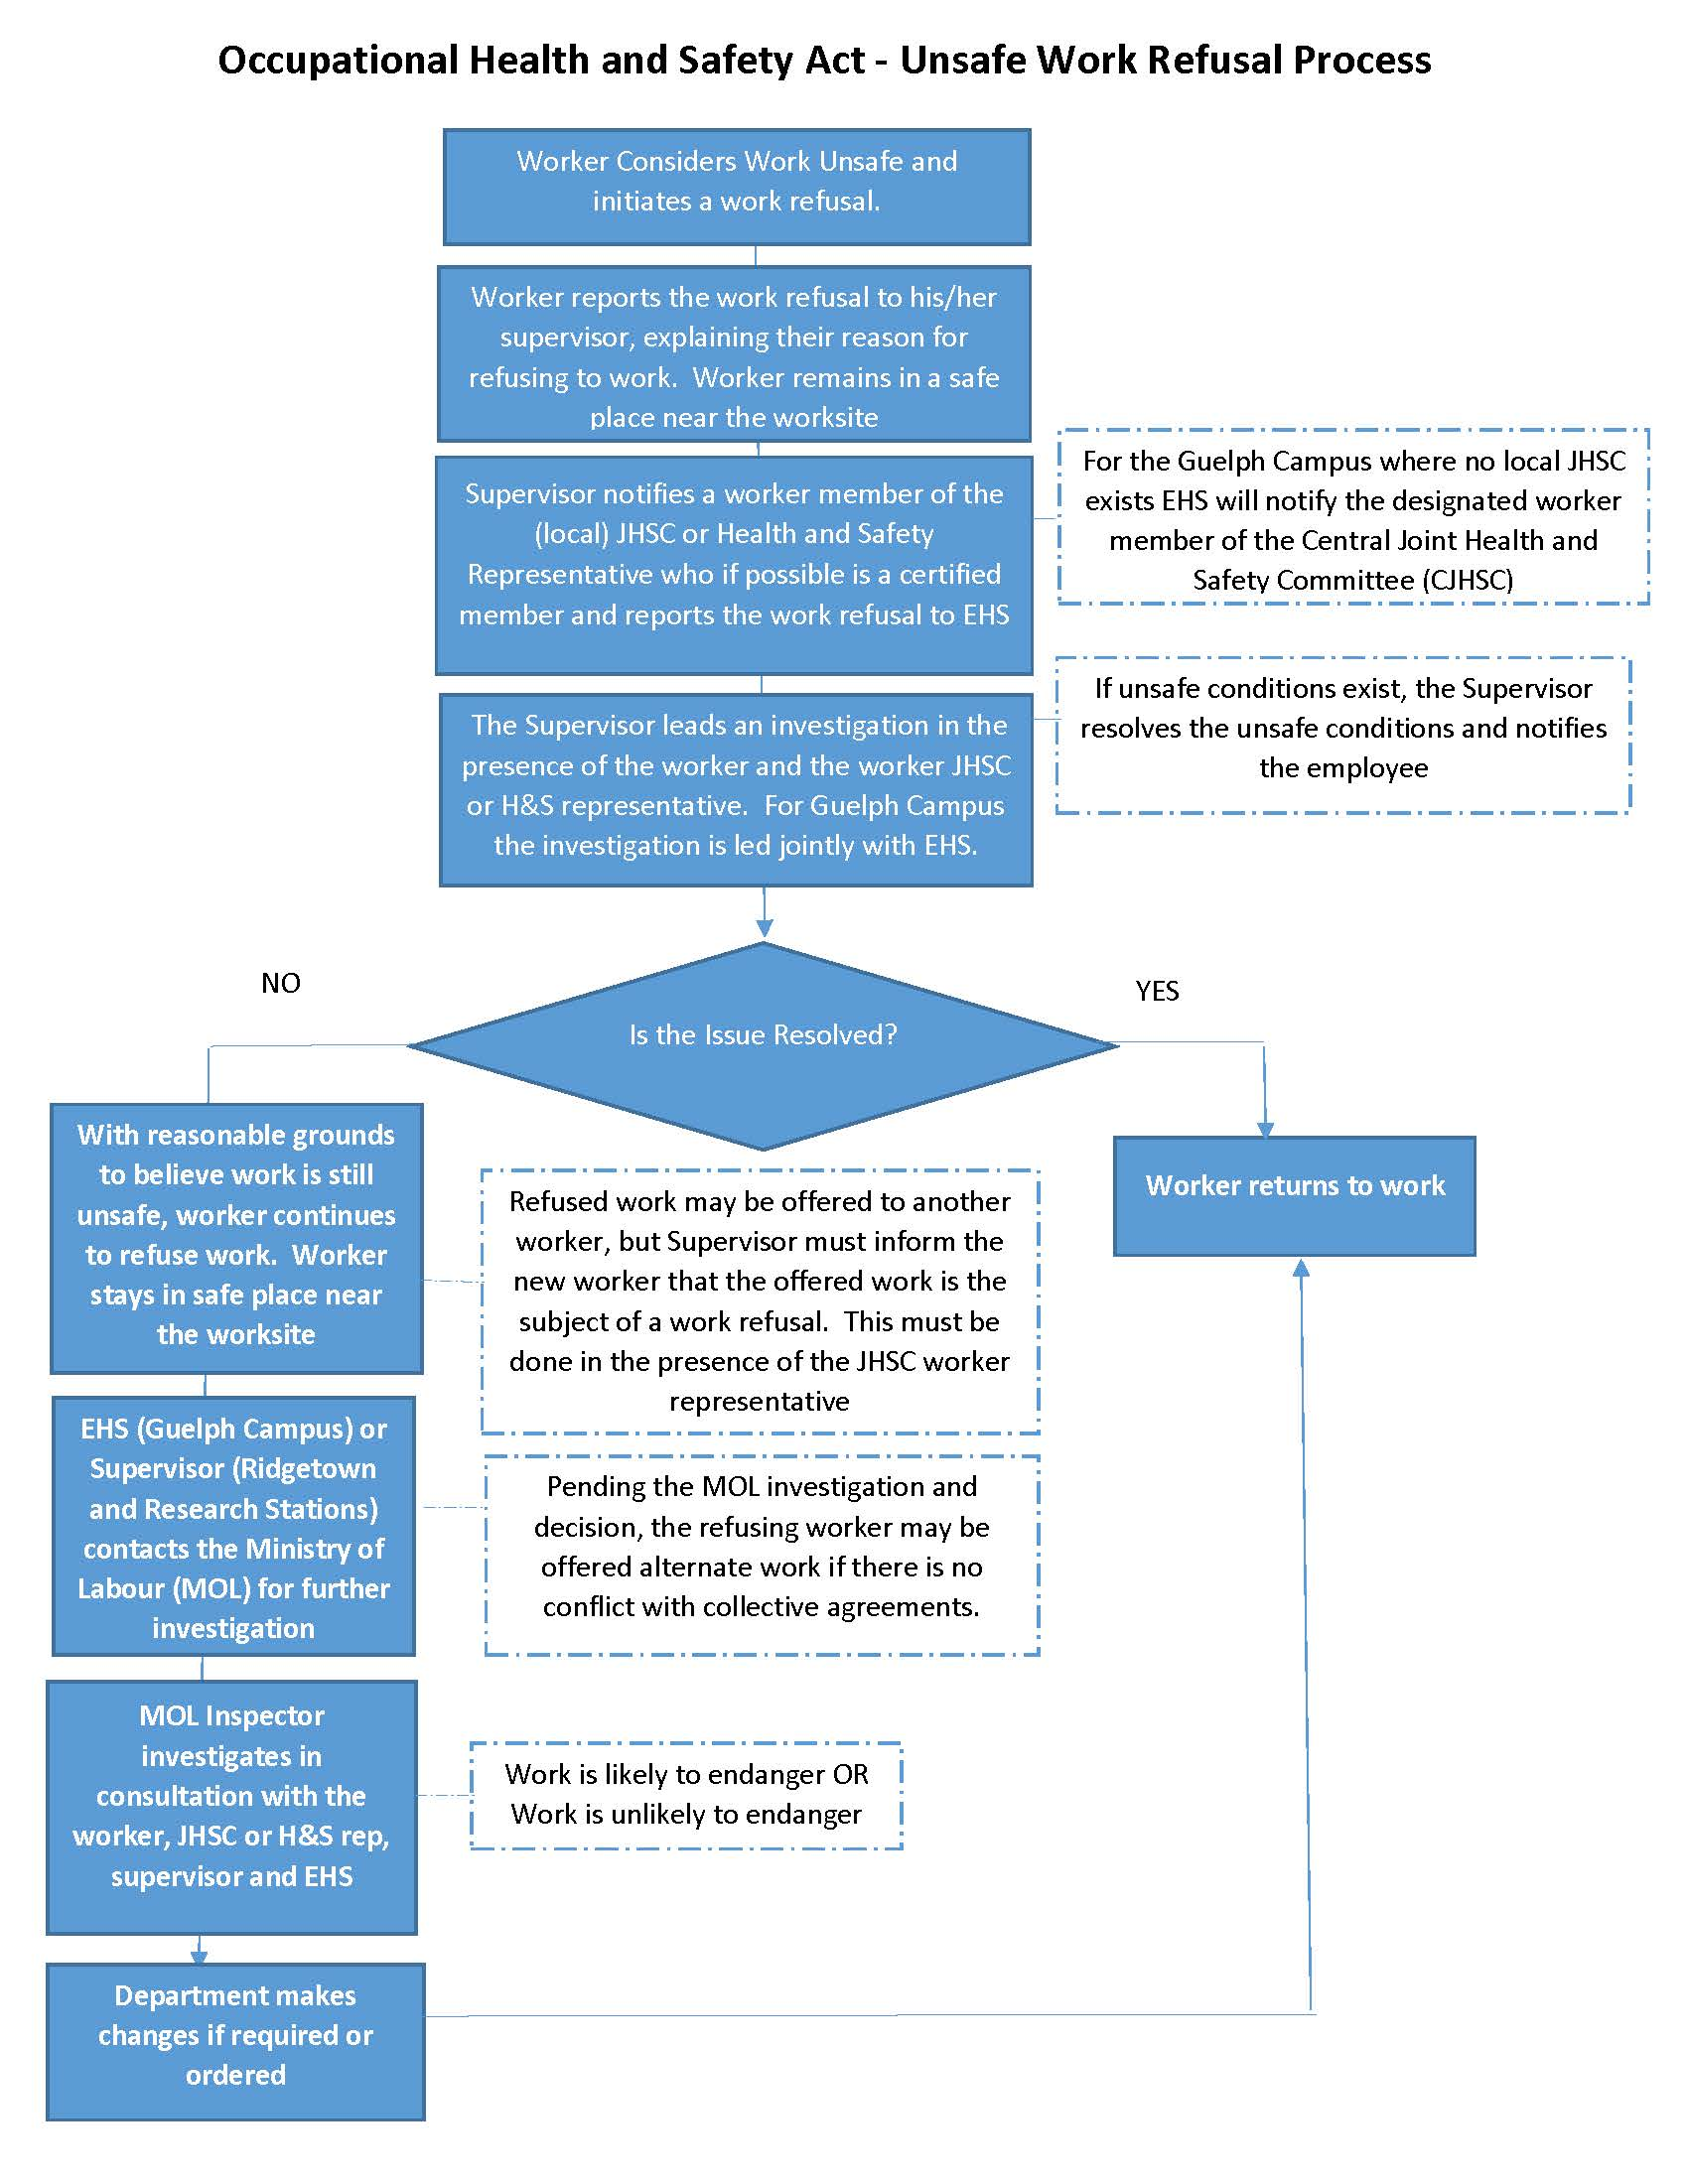 Flow Chart of the OHSA Unsafe Work Refusal Process